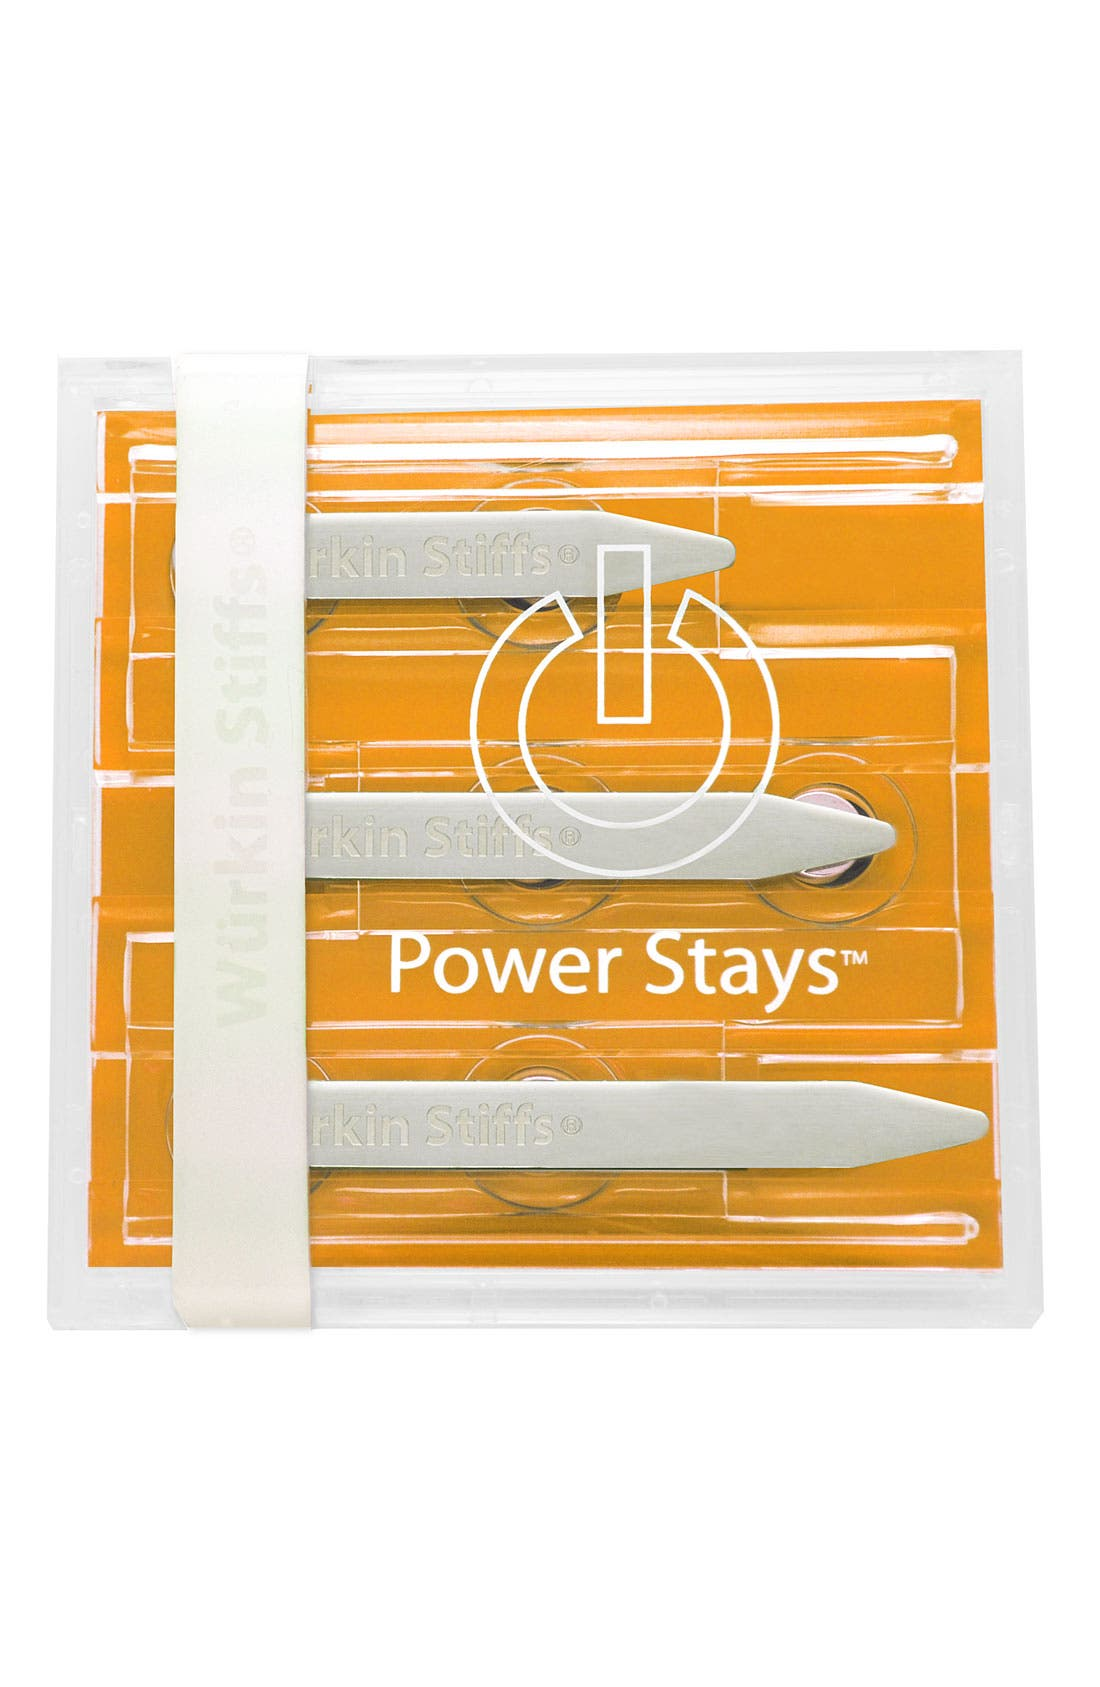 Main Image - Würkin Stiffs 'Power' Stays (6-Piece Set)